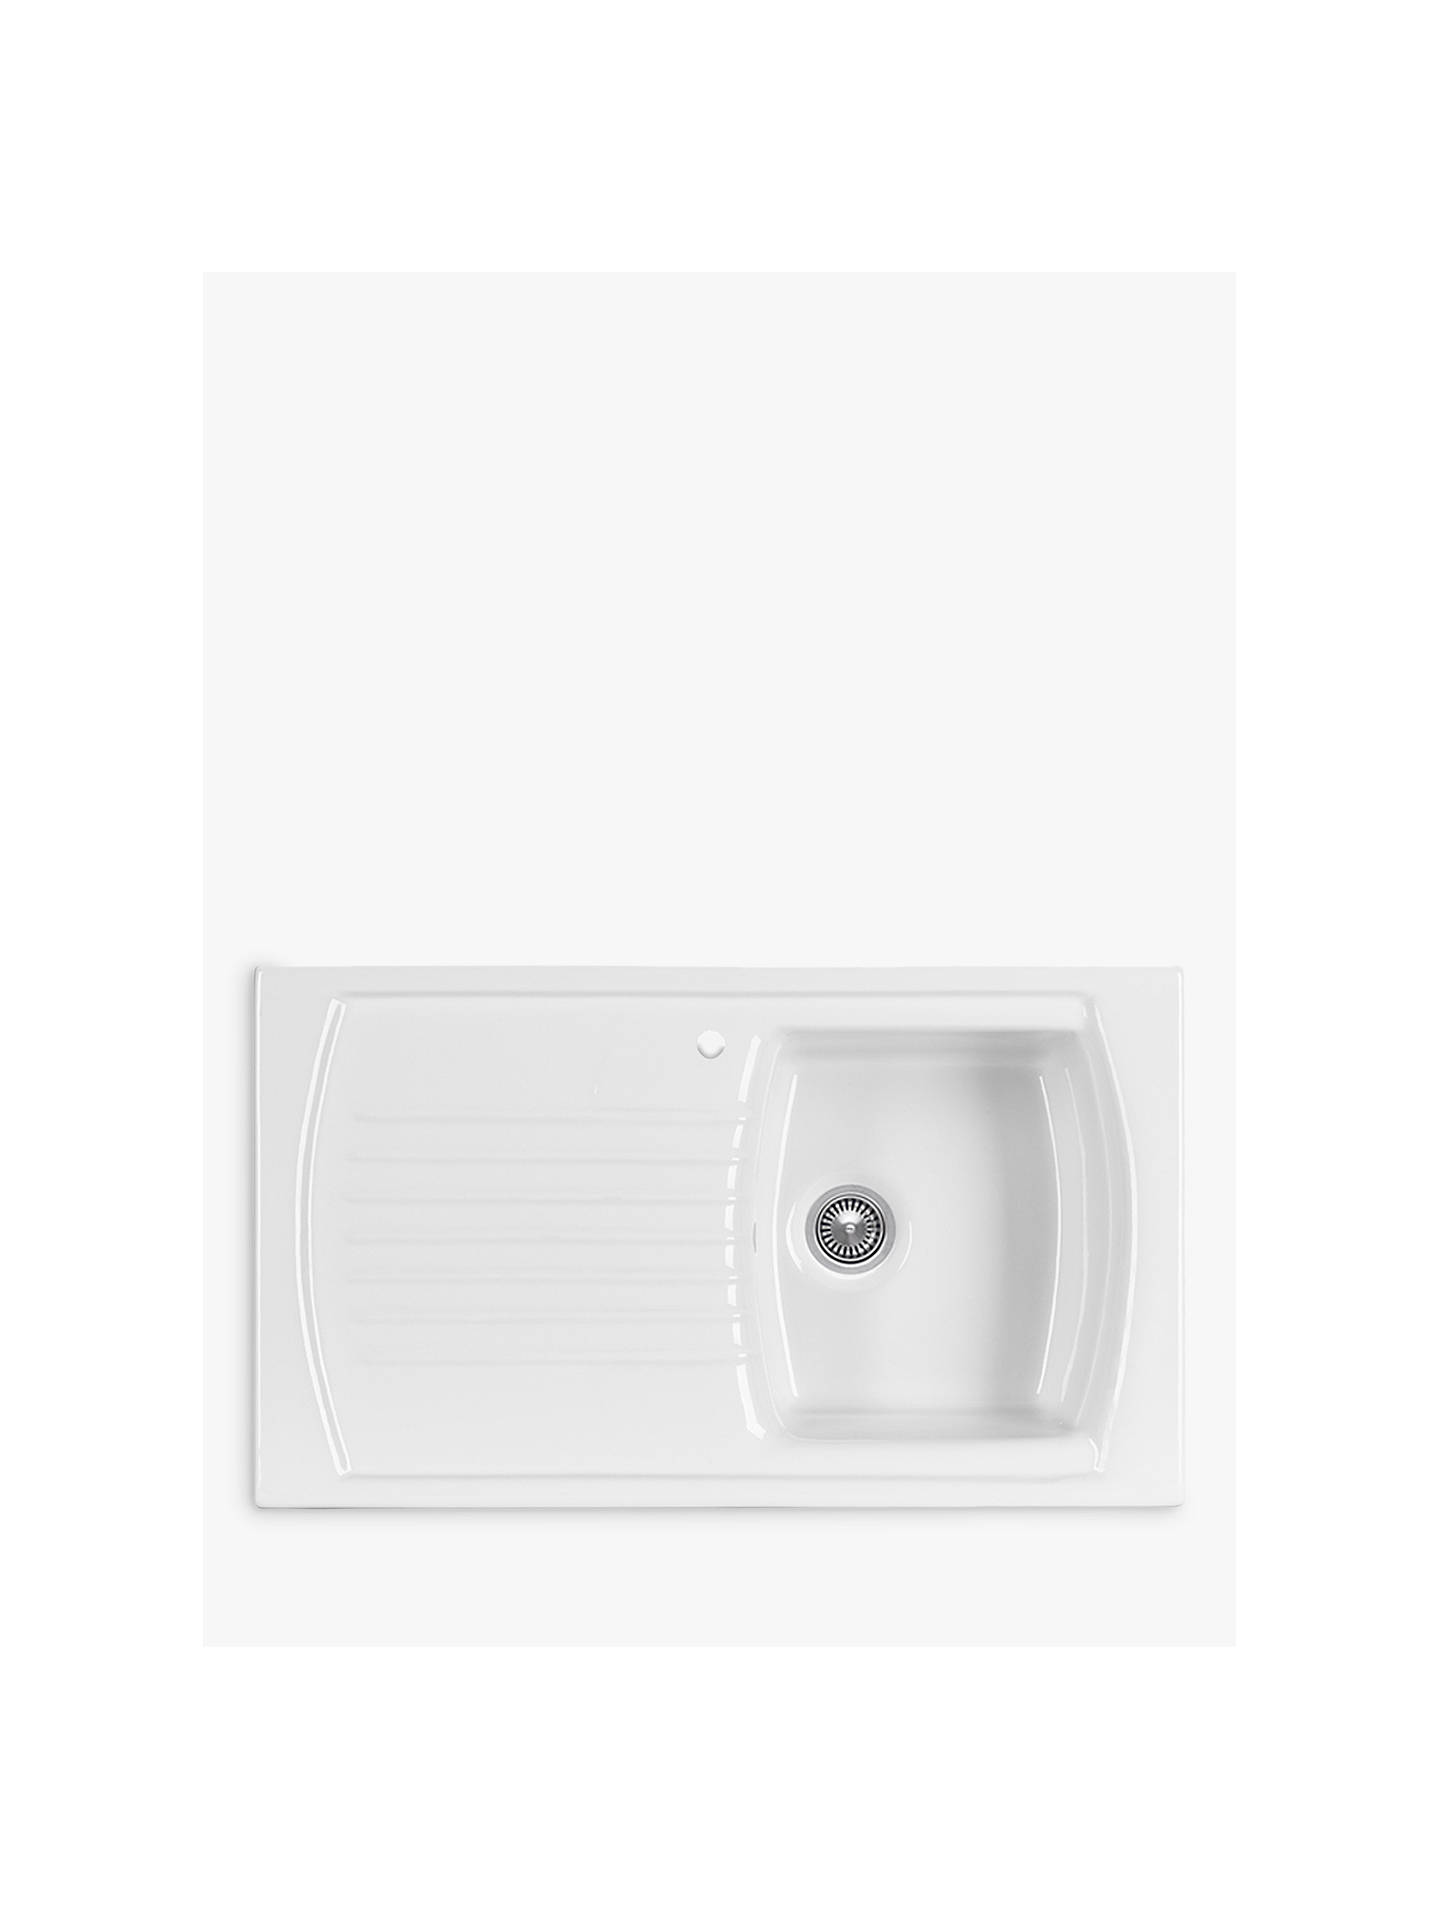 Clearwater Sonnet Inset Single Bowl Ceramic Kitchen Sink, White at ...